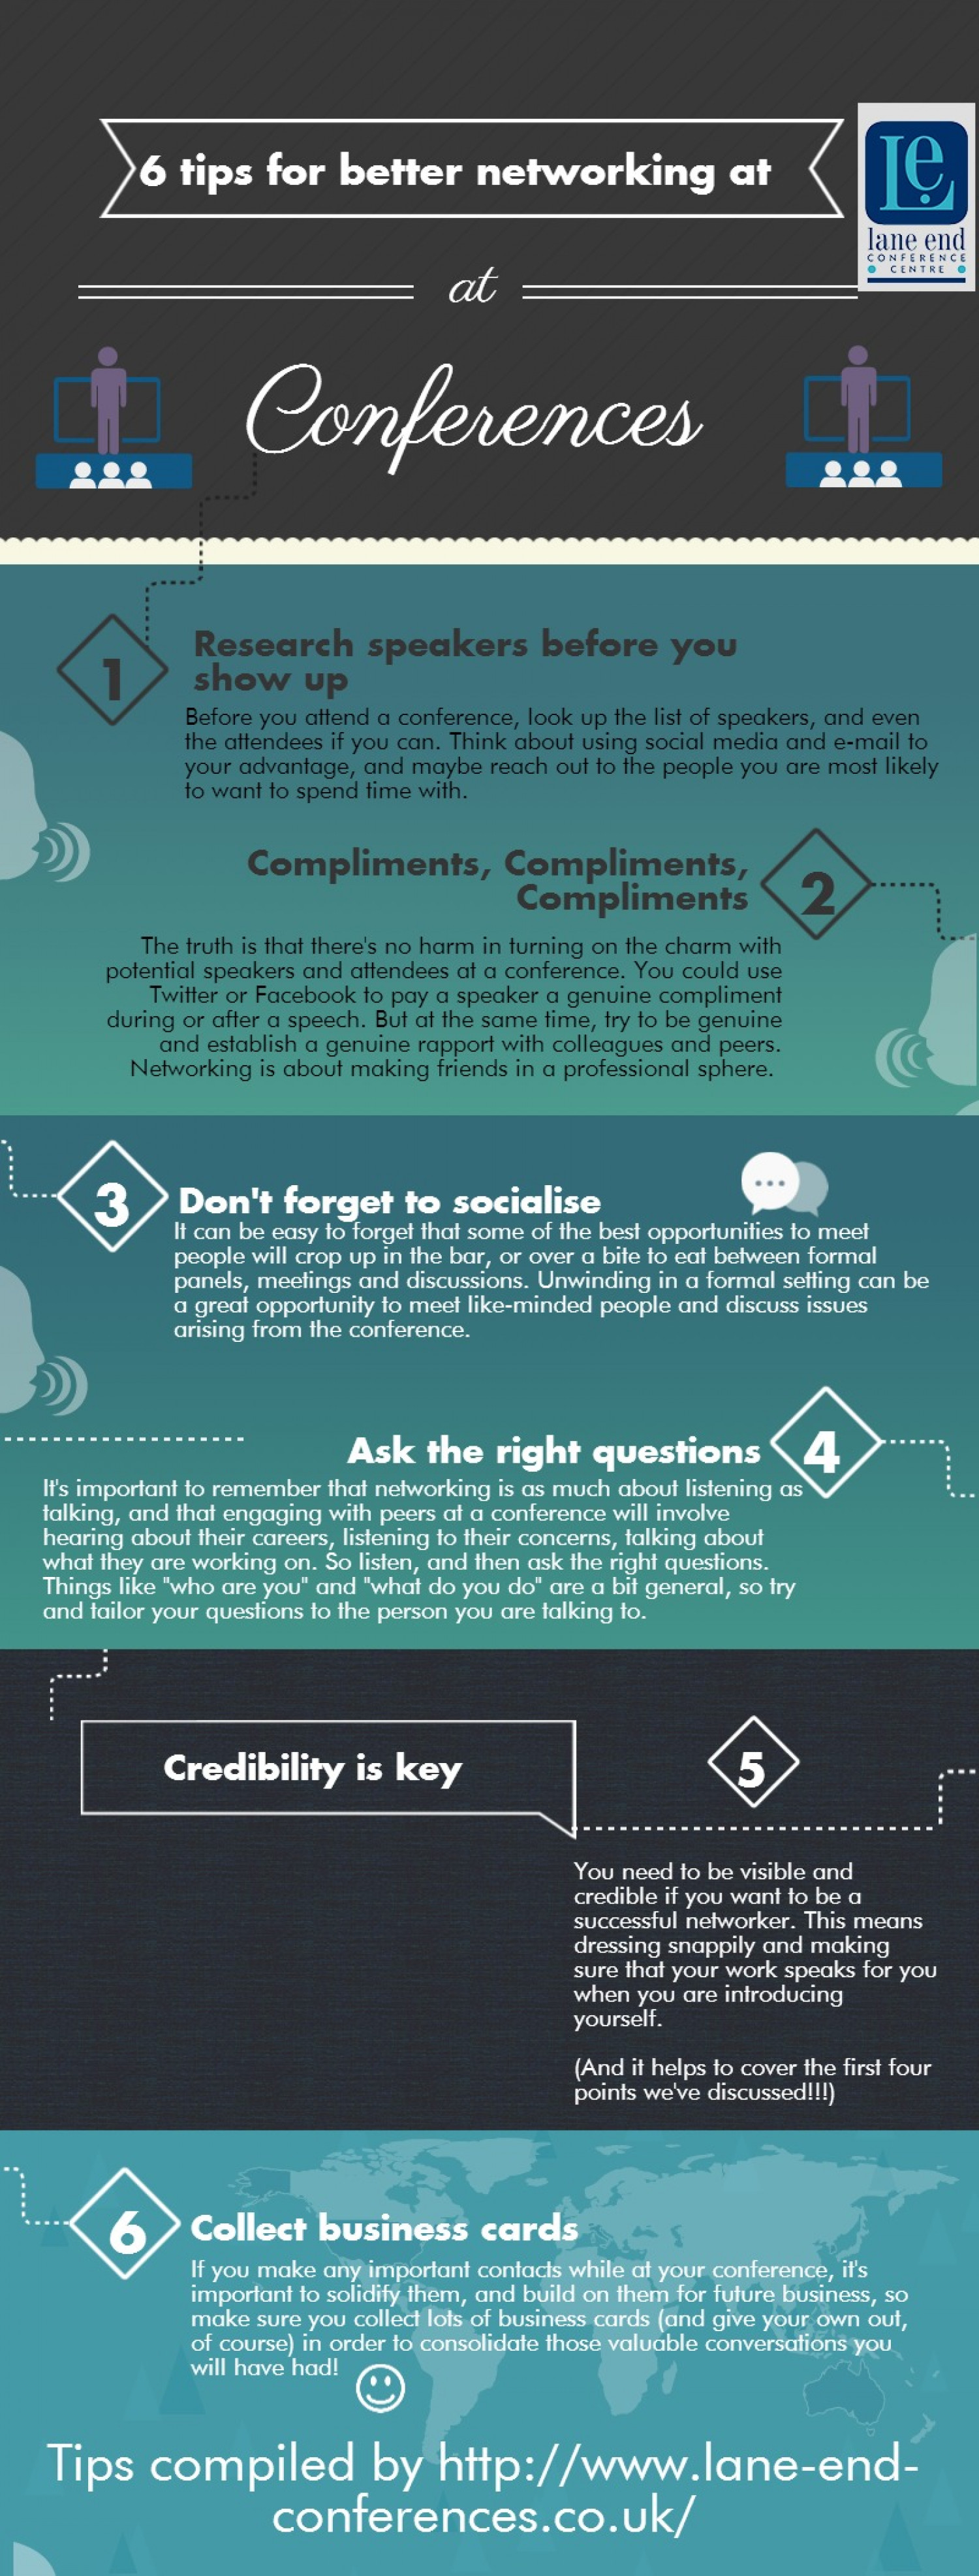 6 tips for networking at conferences  Infographic